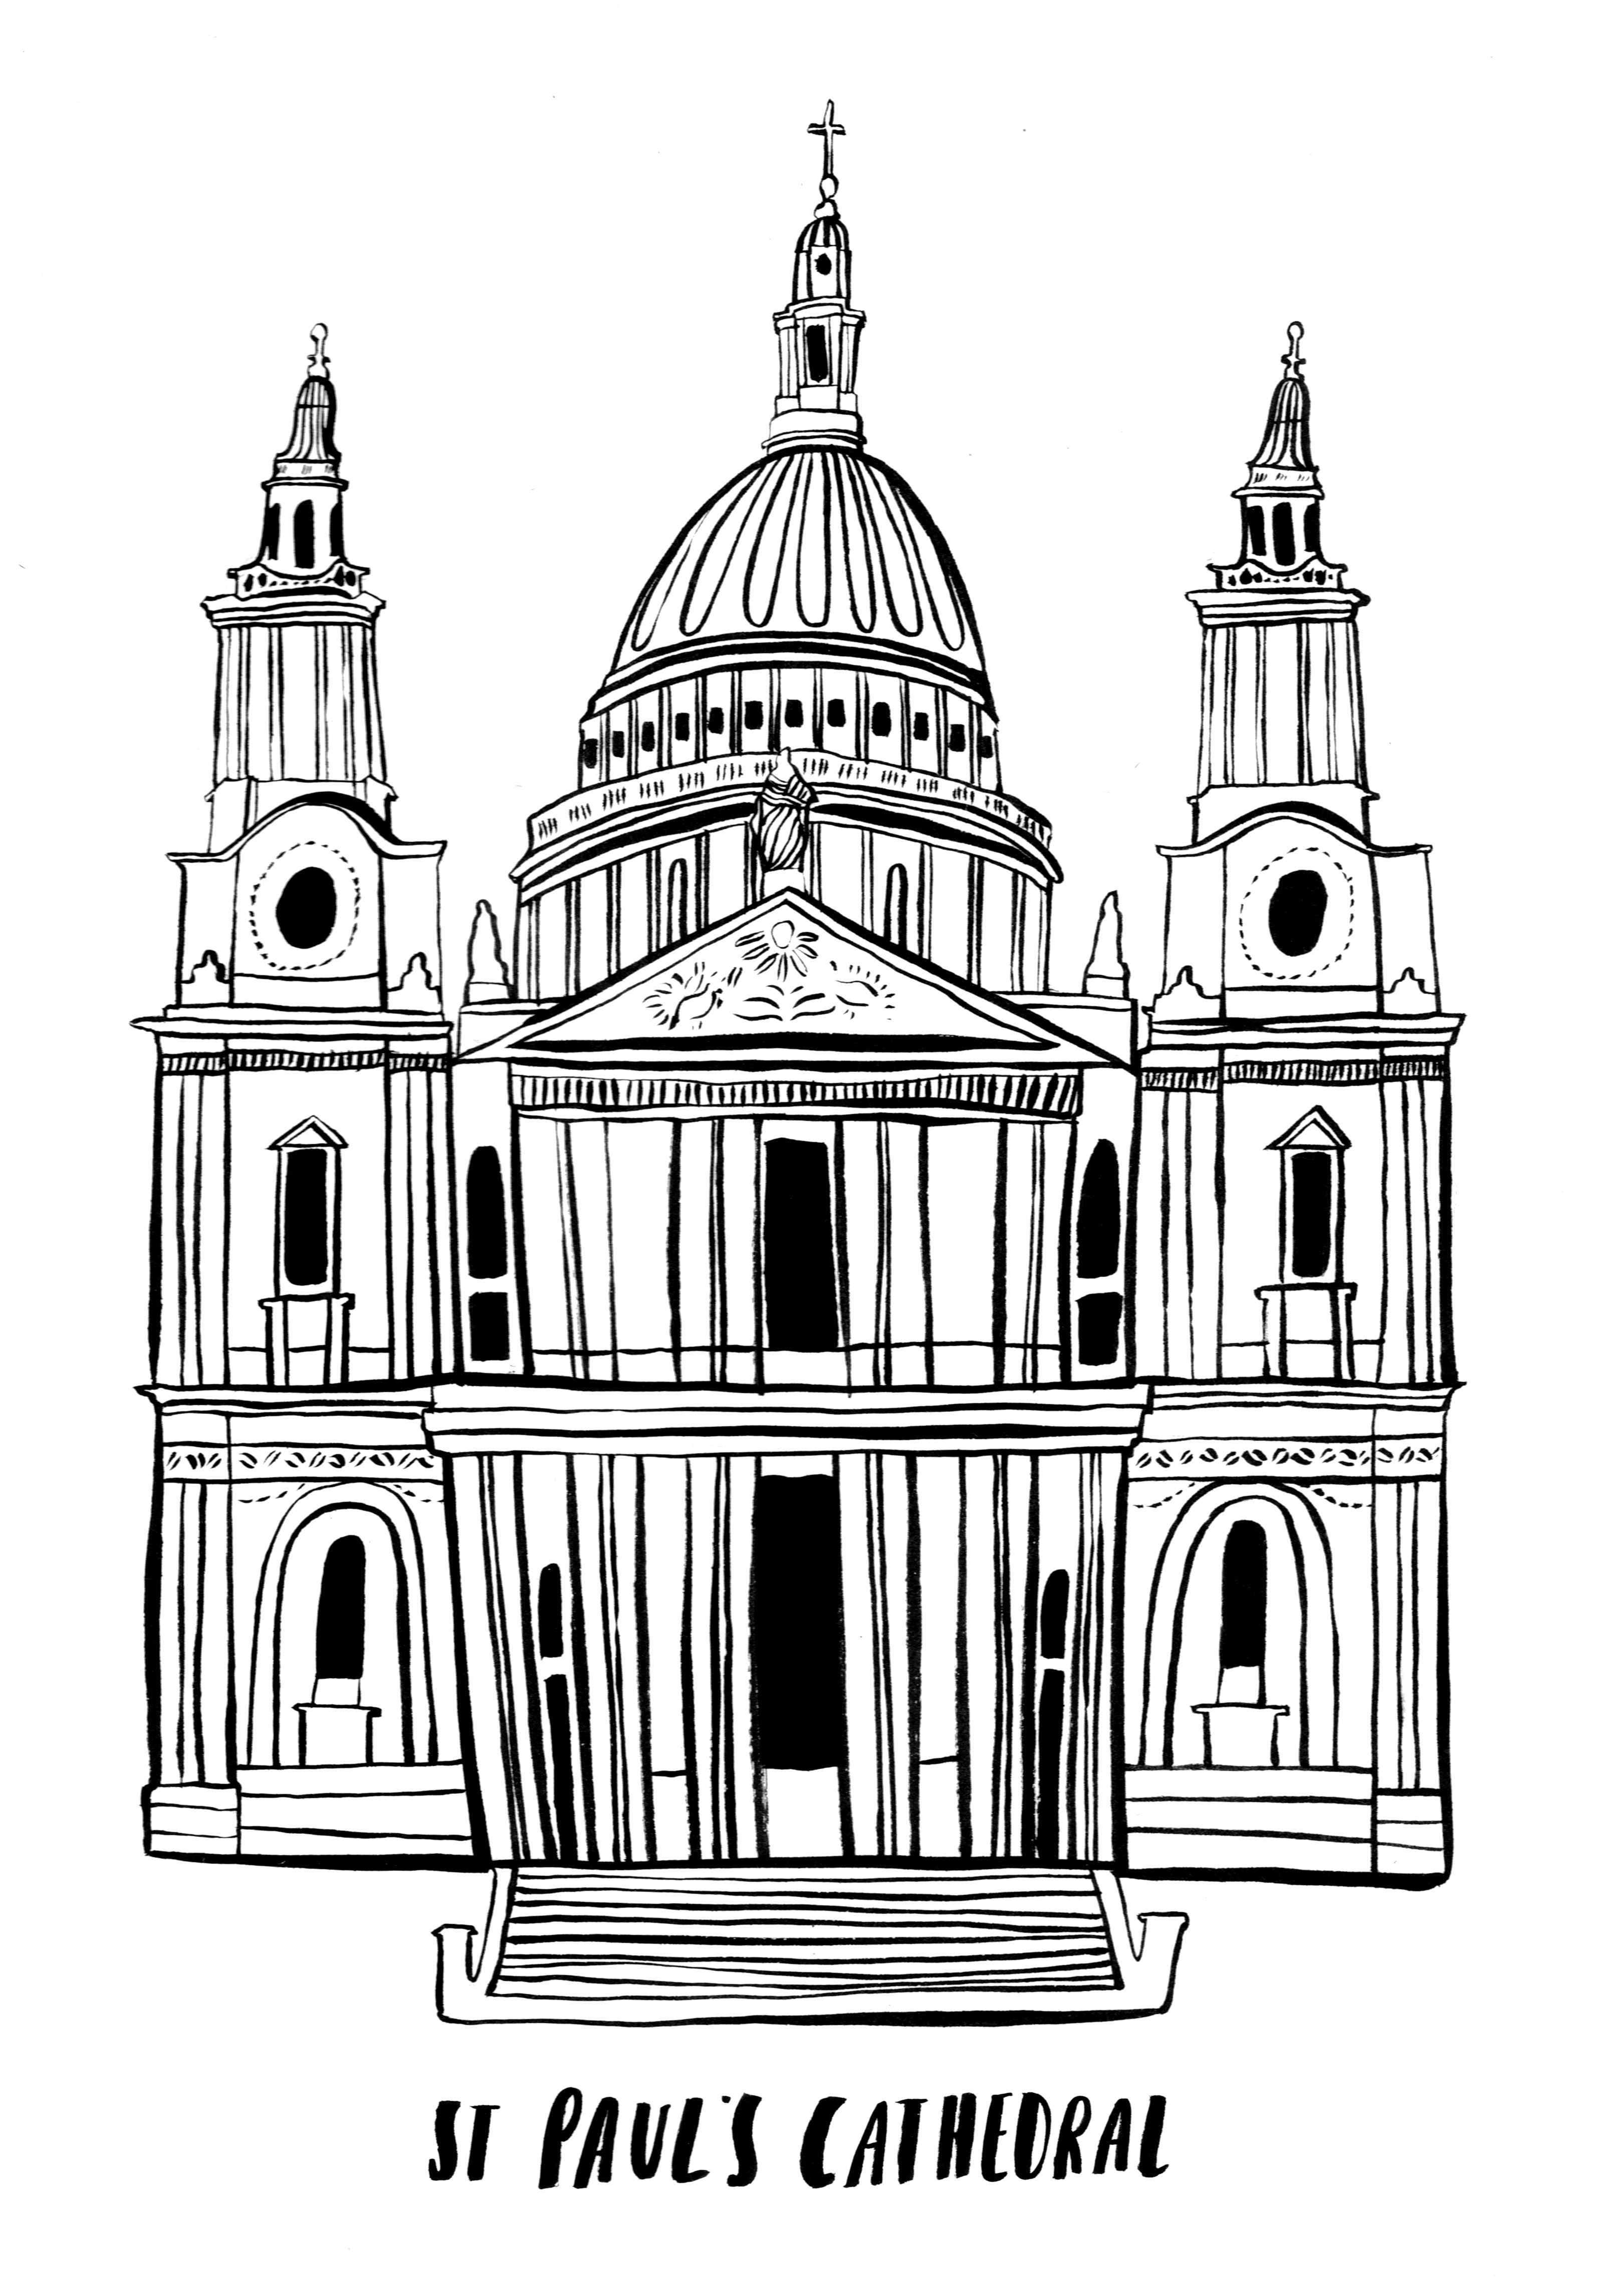 'St. Paul's Cathedral'